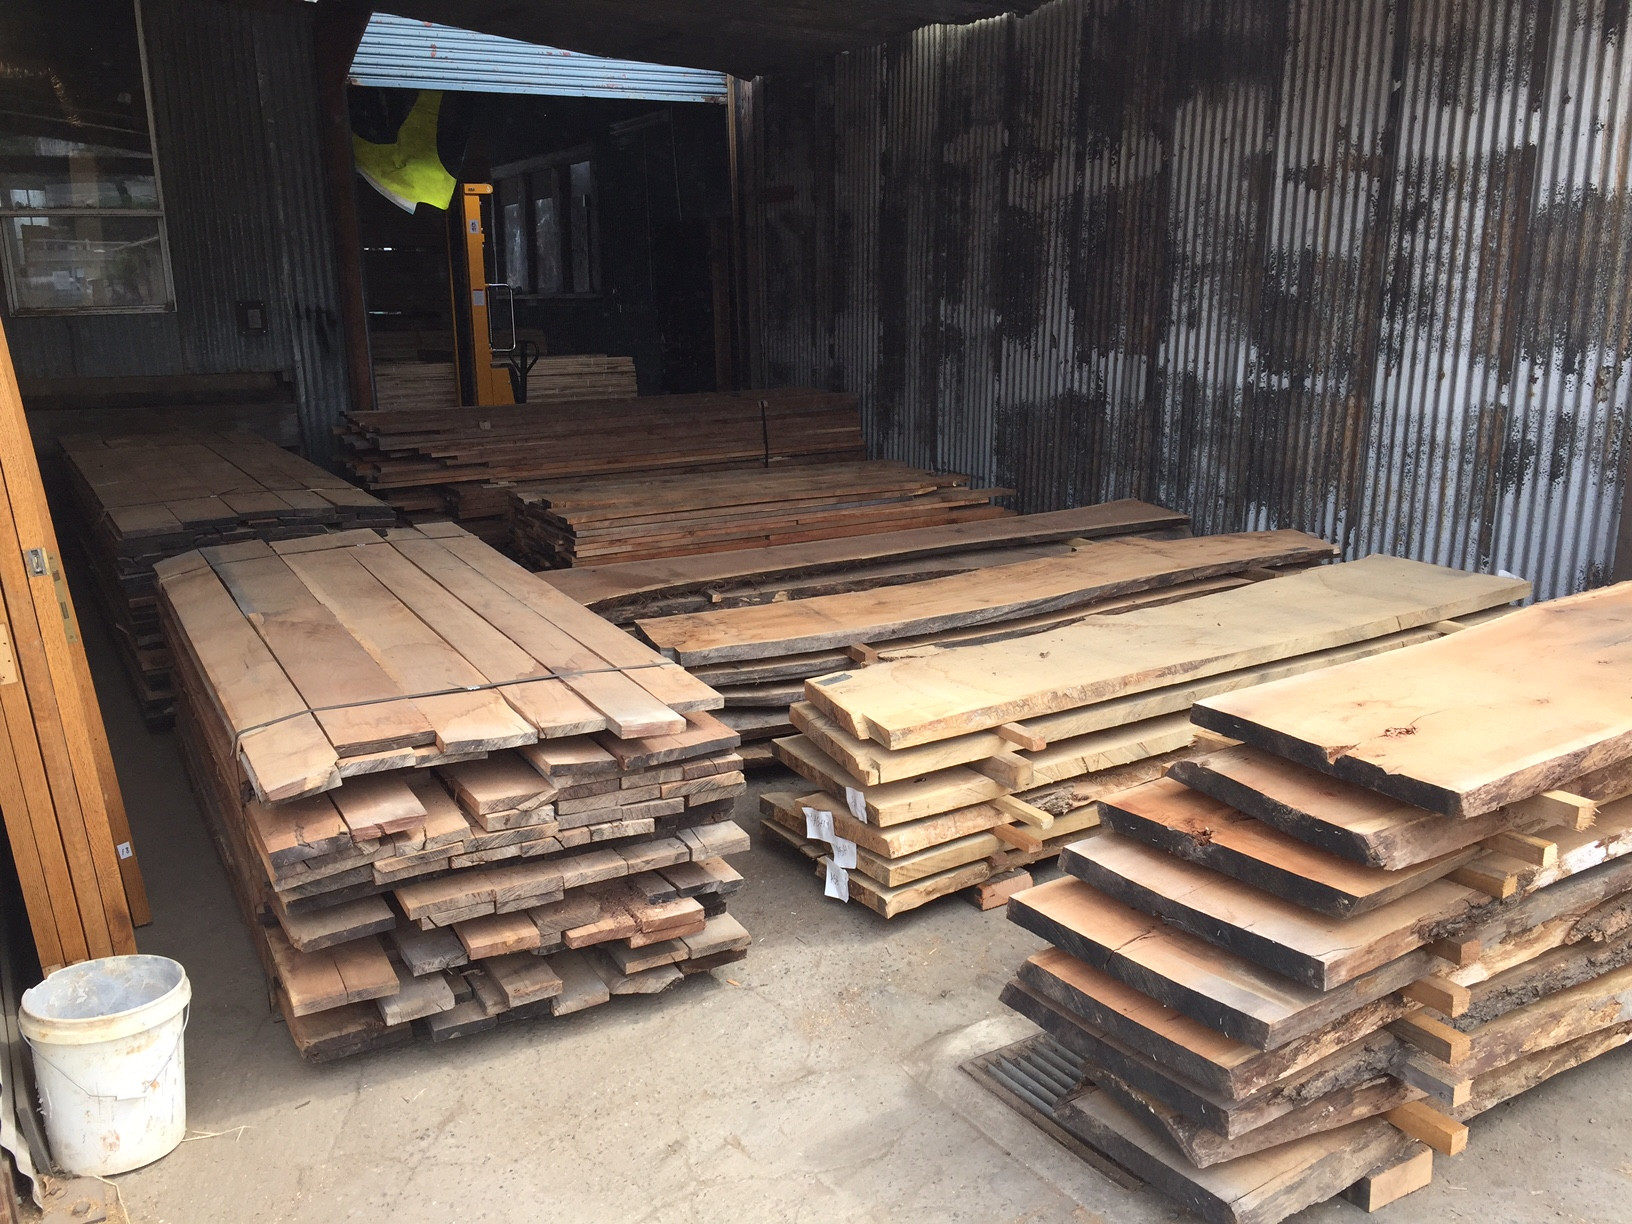 hardwood floor refinishing sacramento of heritage salvage heritage salvage in walnut cherry butternut ash 4 4 boards and live edge slabs just in time for our big sale beautiful hard woods from ohio have landed in the yard